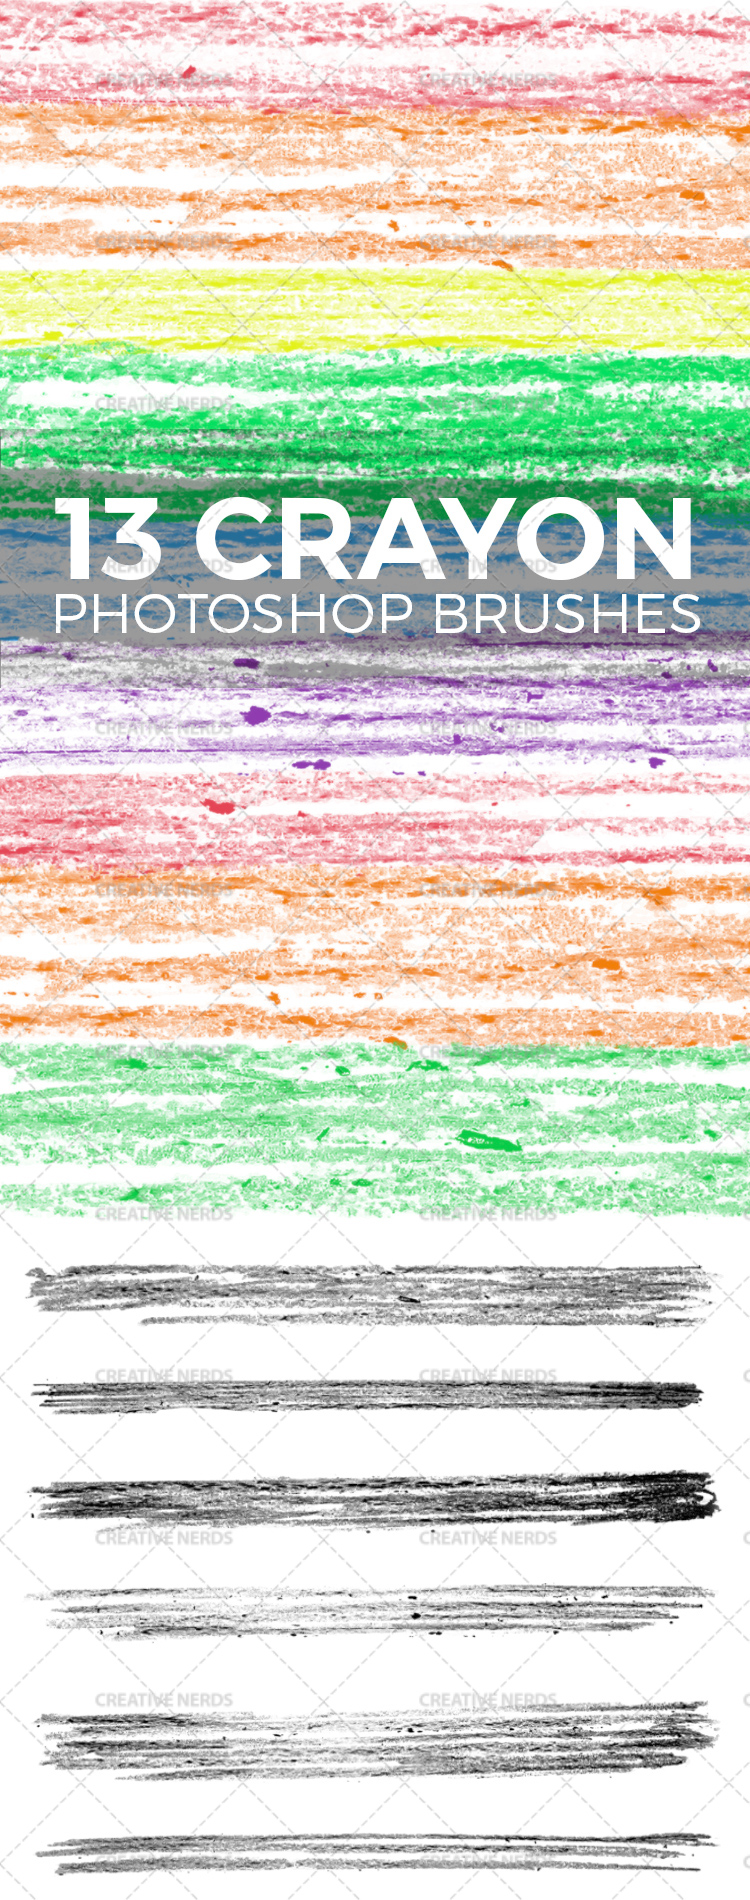 wax crayon photoshop brushes 13 Wax Crayon Photoshop brushes